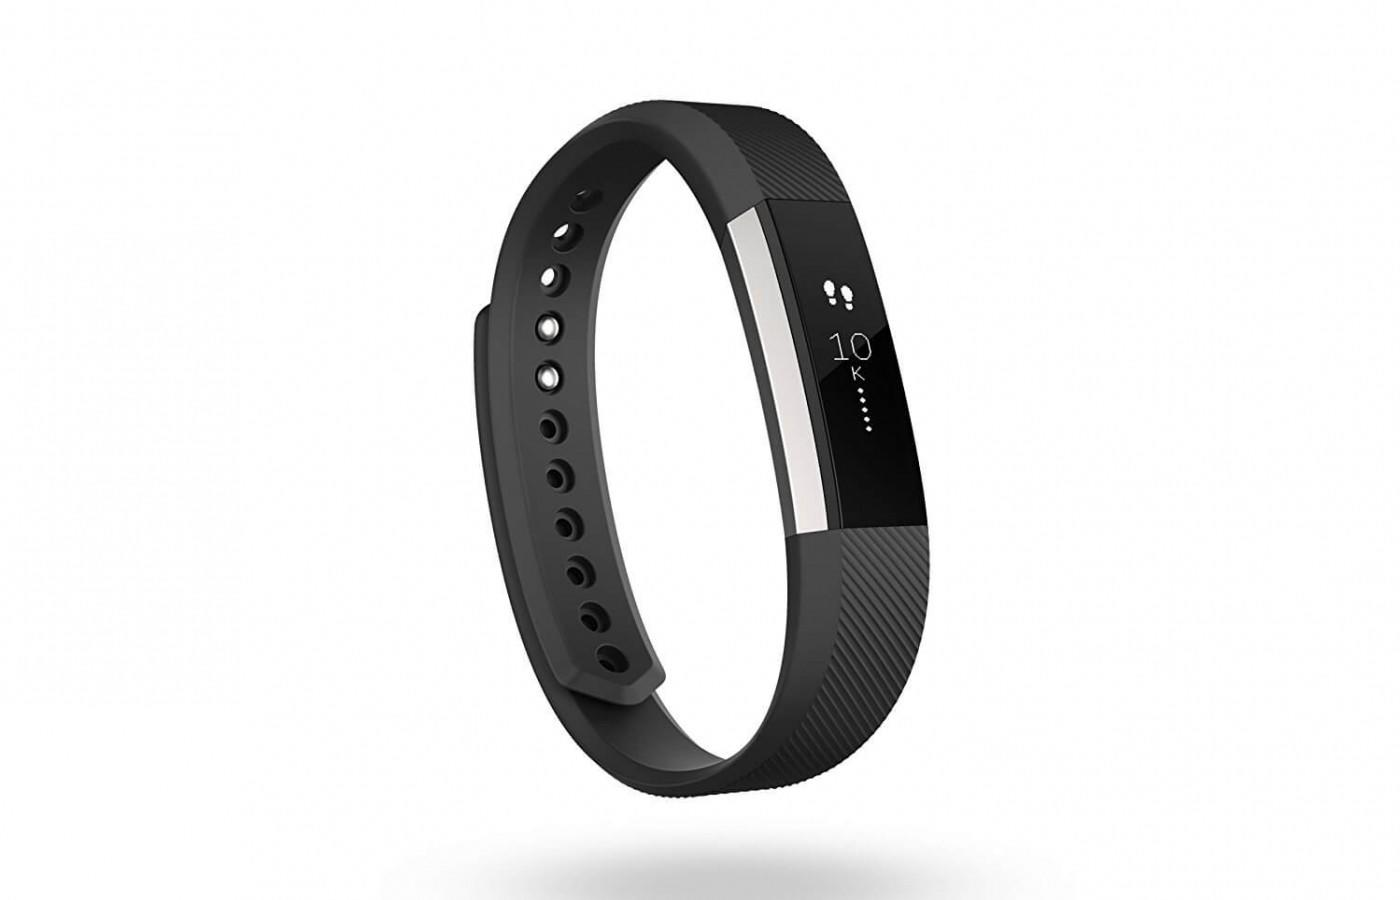 The strong clasp keeps the tracker secure on any wrist.